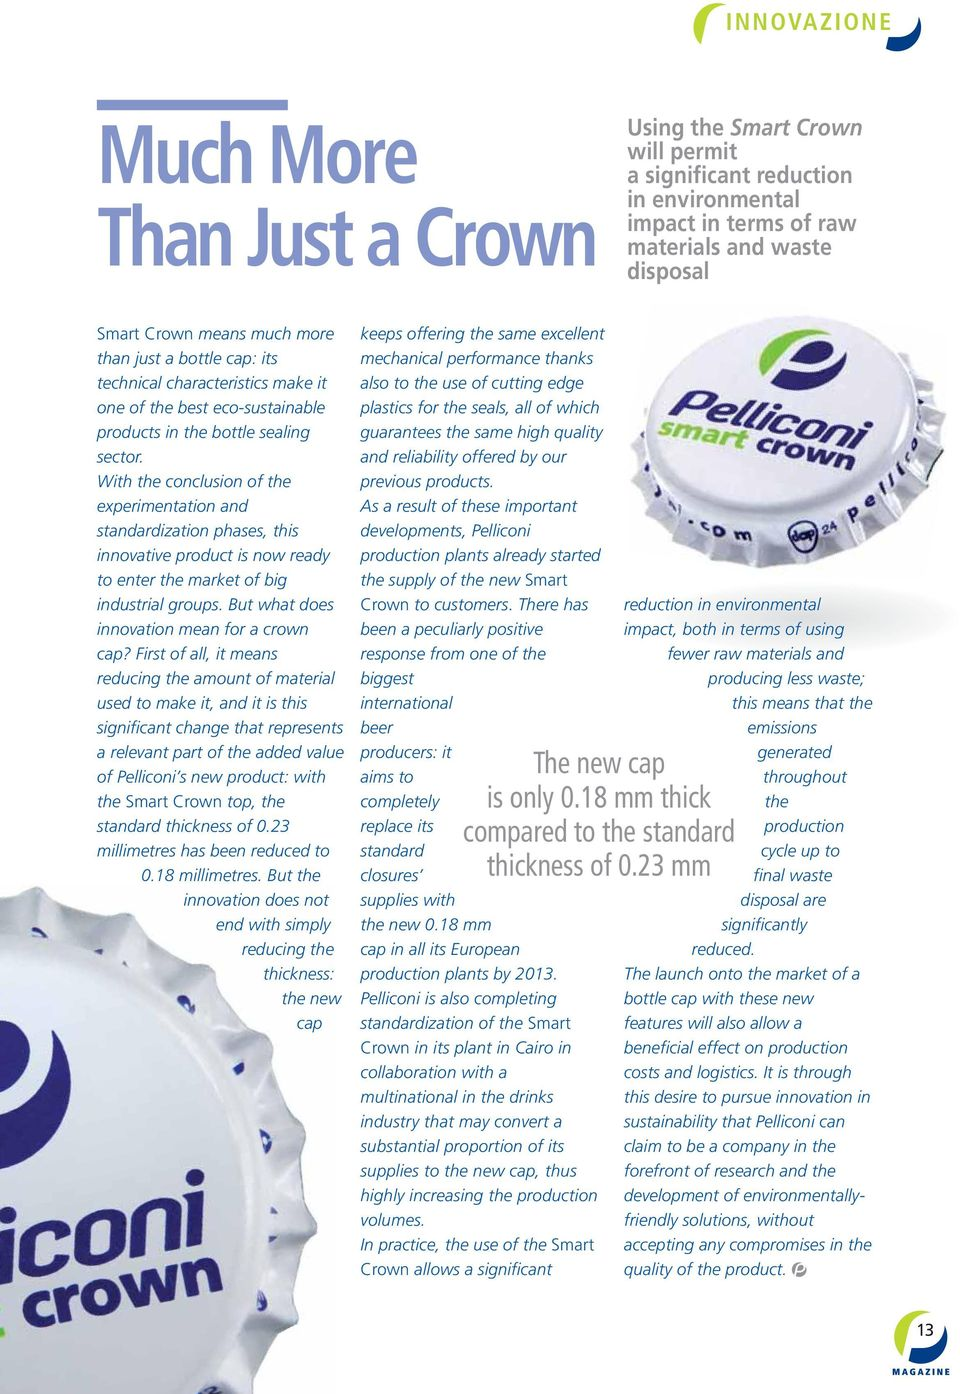 With the conclusion of the experimentation and standardization phases, this innovative product is now ready to enter the market of big industrial groups. But what does innovation mean for a crown cap?